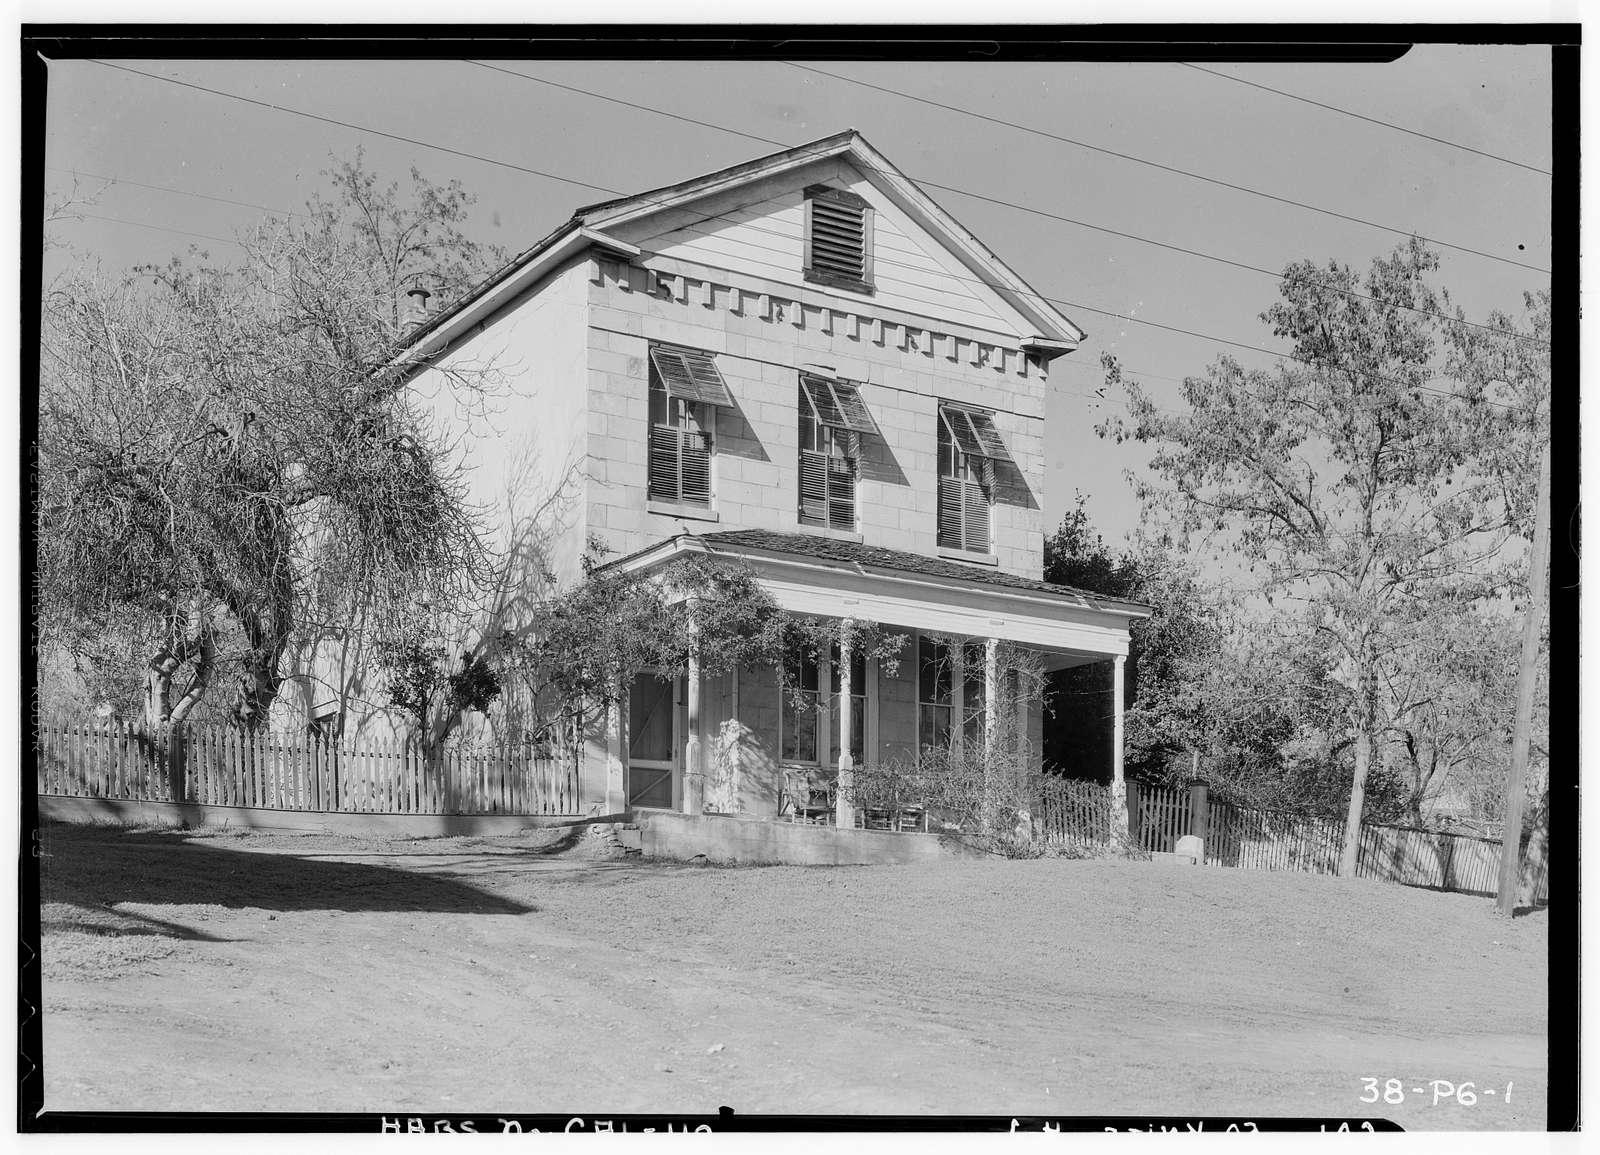 Schell House, Knights Ferry, Stanislaus County, CA